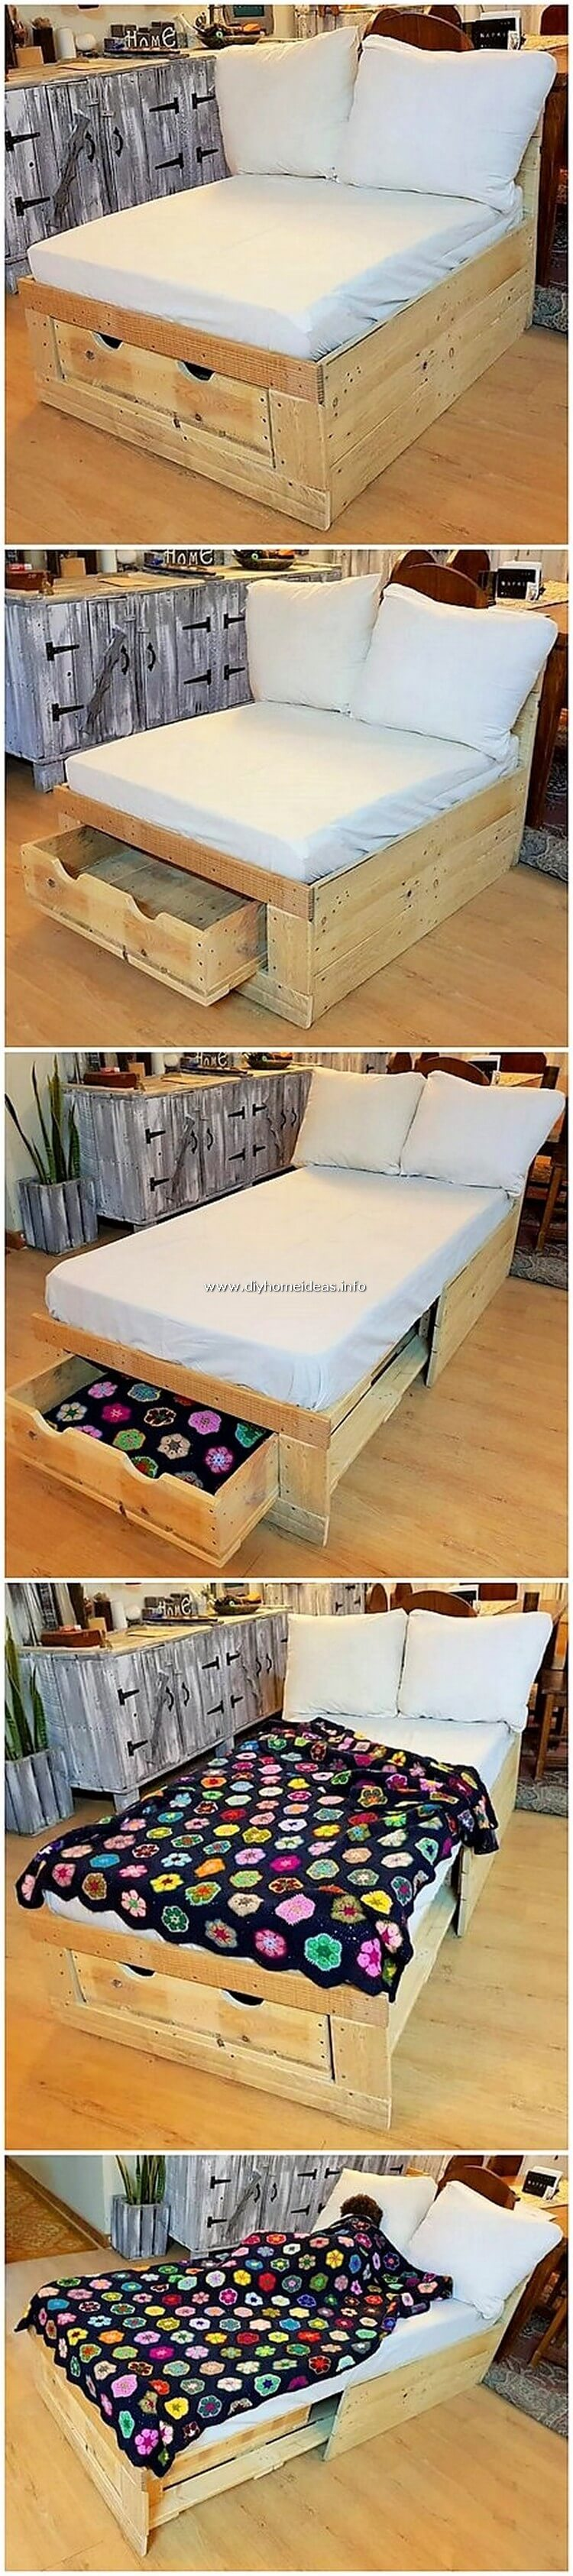 Pallet Chair or Bed with Drawer